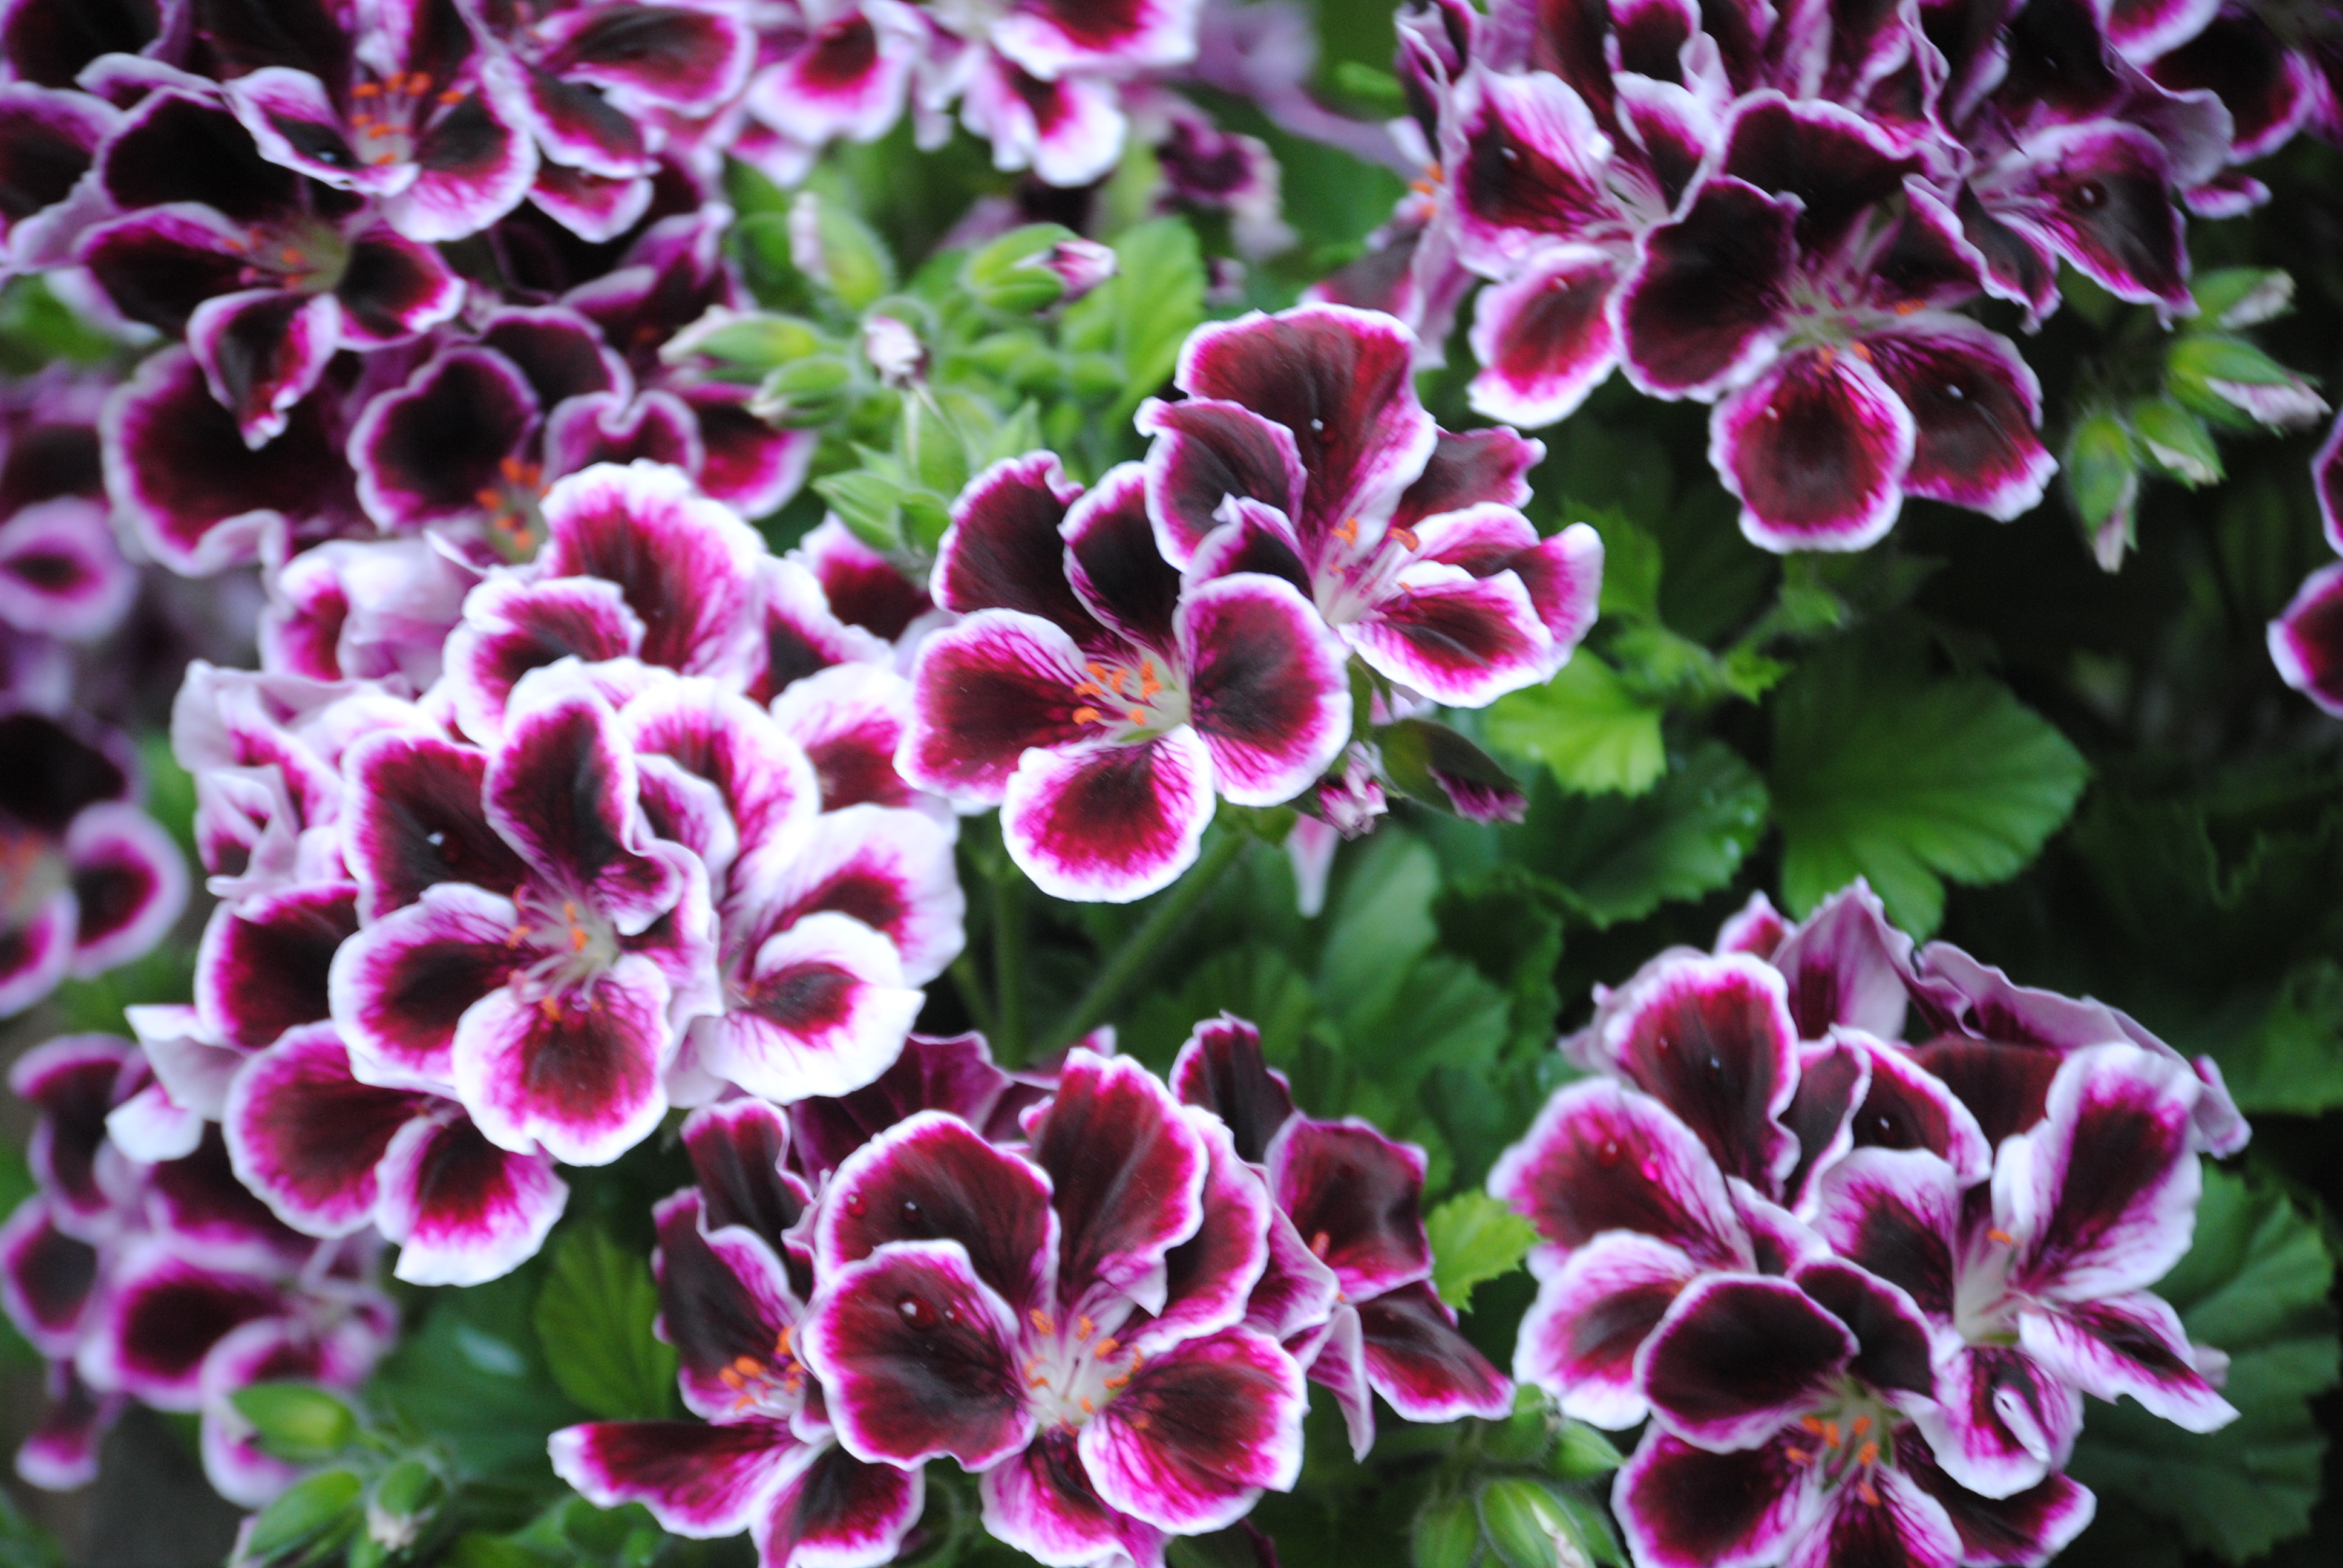 Geraniums Are Toxic to Dogs I Didn t Know That mybrownnewfies